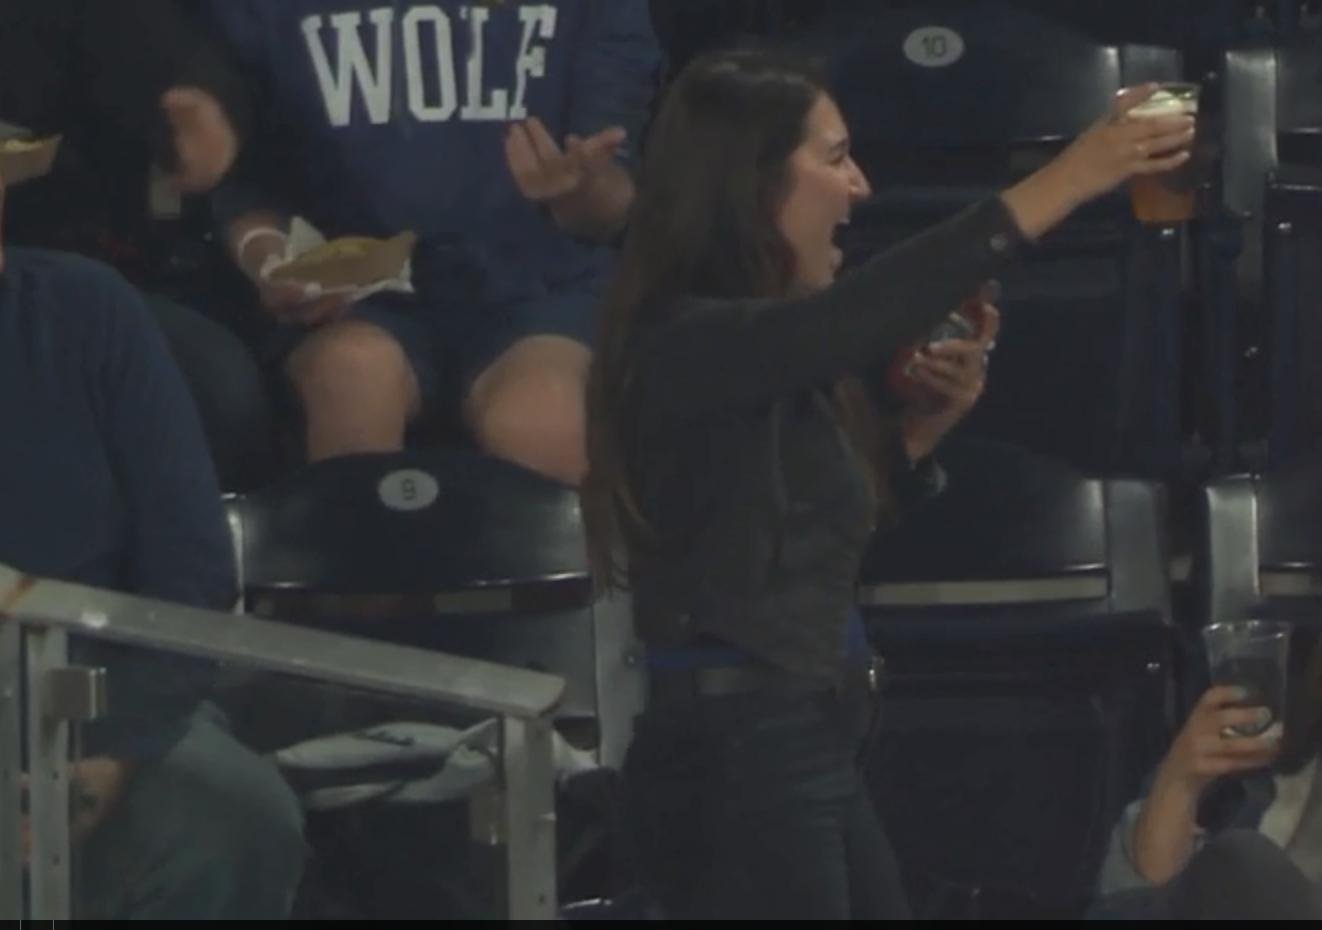 Padres Fan's Amazing Play: Foul ball caught in beer cup!